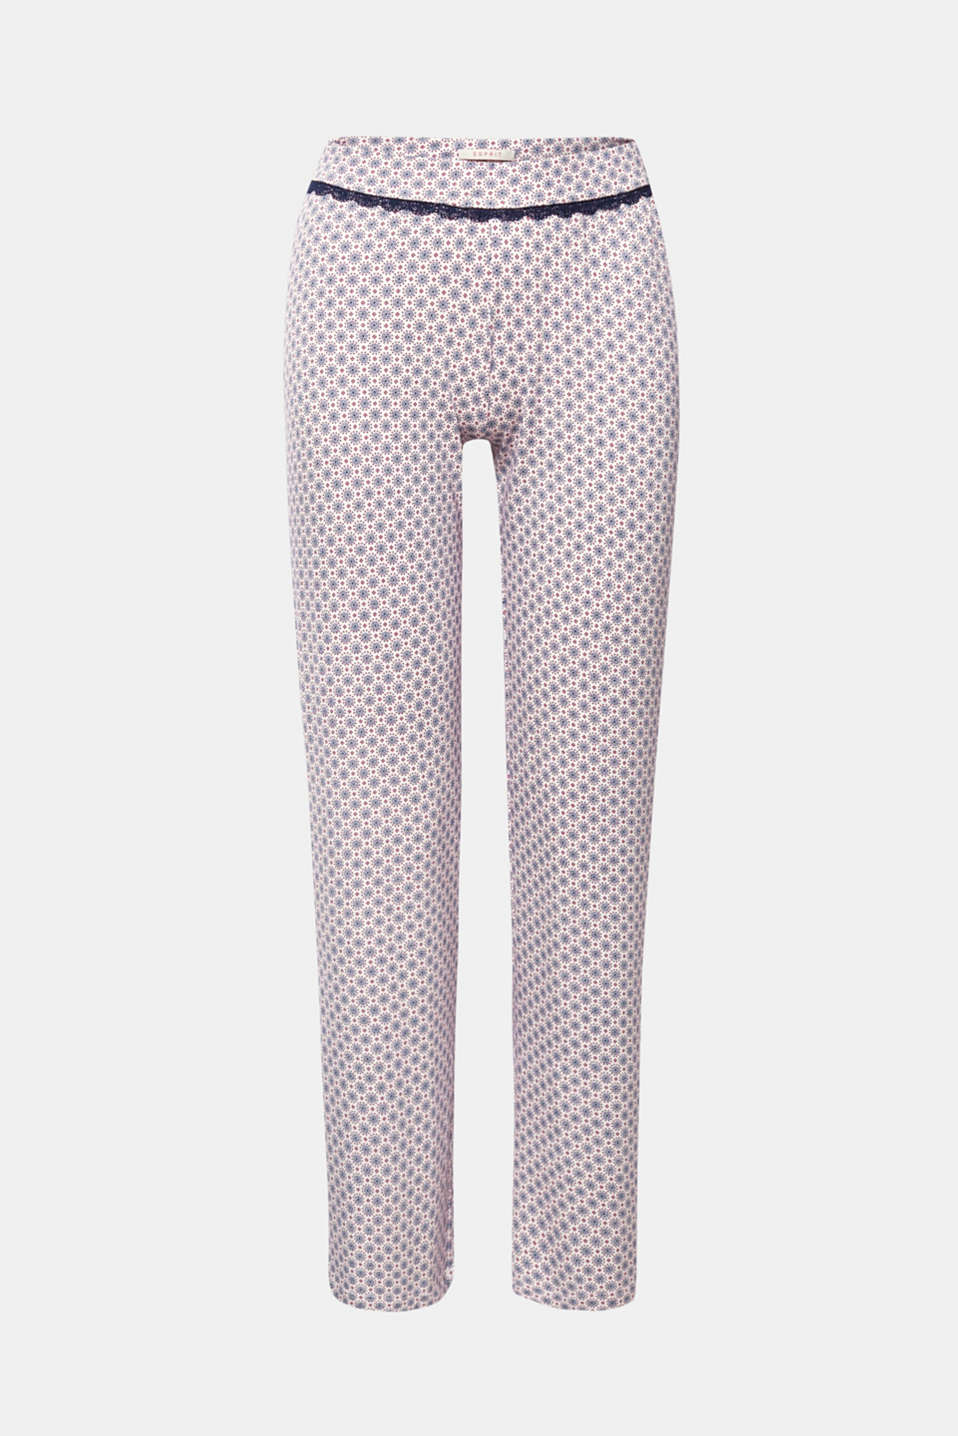 Femininely detailed, chill-out trousers! These jersey trousers are distinguished by their decorative ornament print whilst the lace border gives them a stylish, romantically-inspired update.